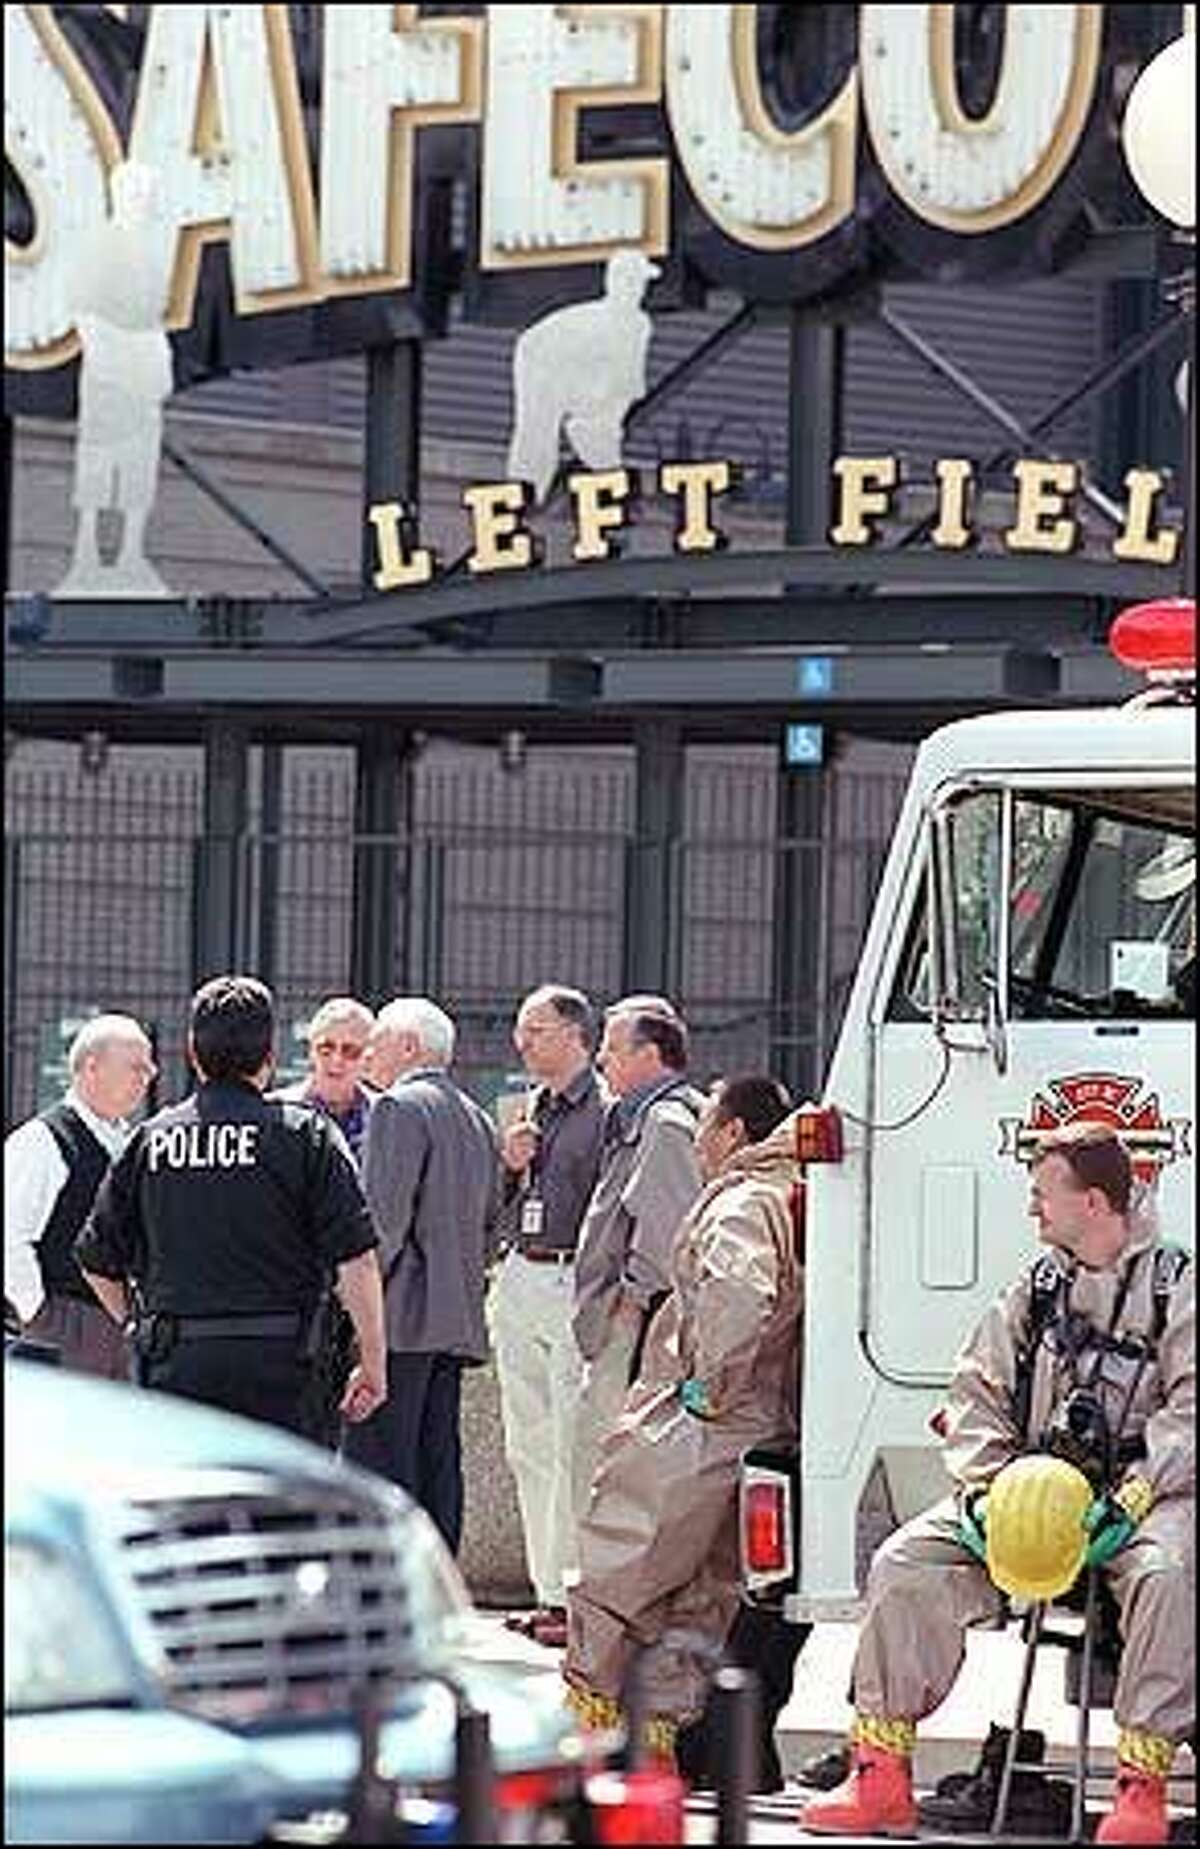 Visitors wanting to tour Safeco Field were turned back by Seattle police and firefighters Friday morning after an attempt to drop the cremated remains of a Seattle Mariners fan over the open playing field.